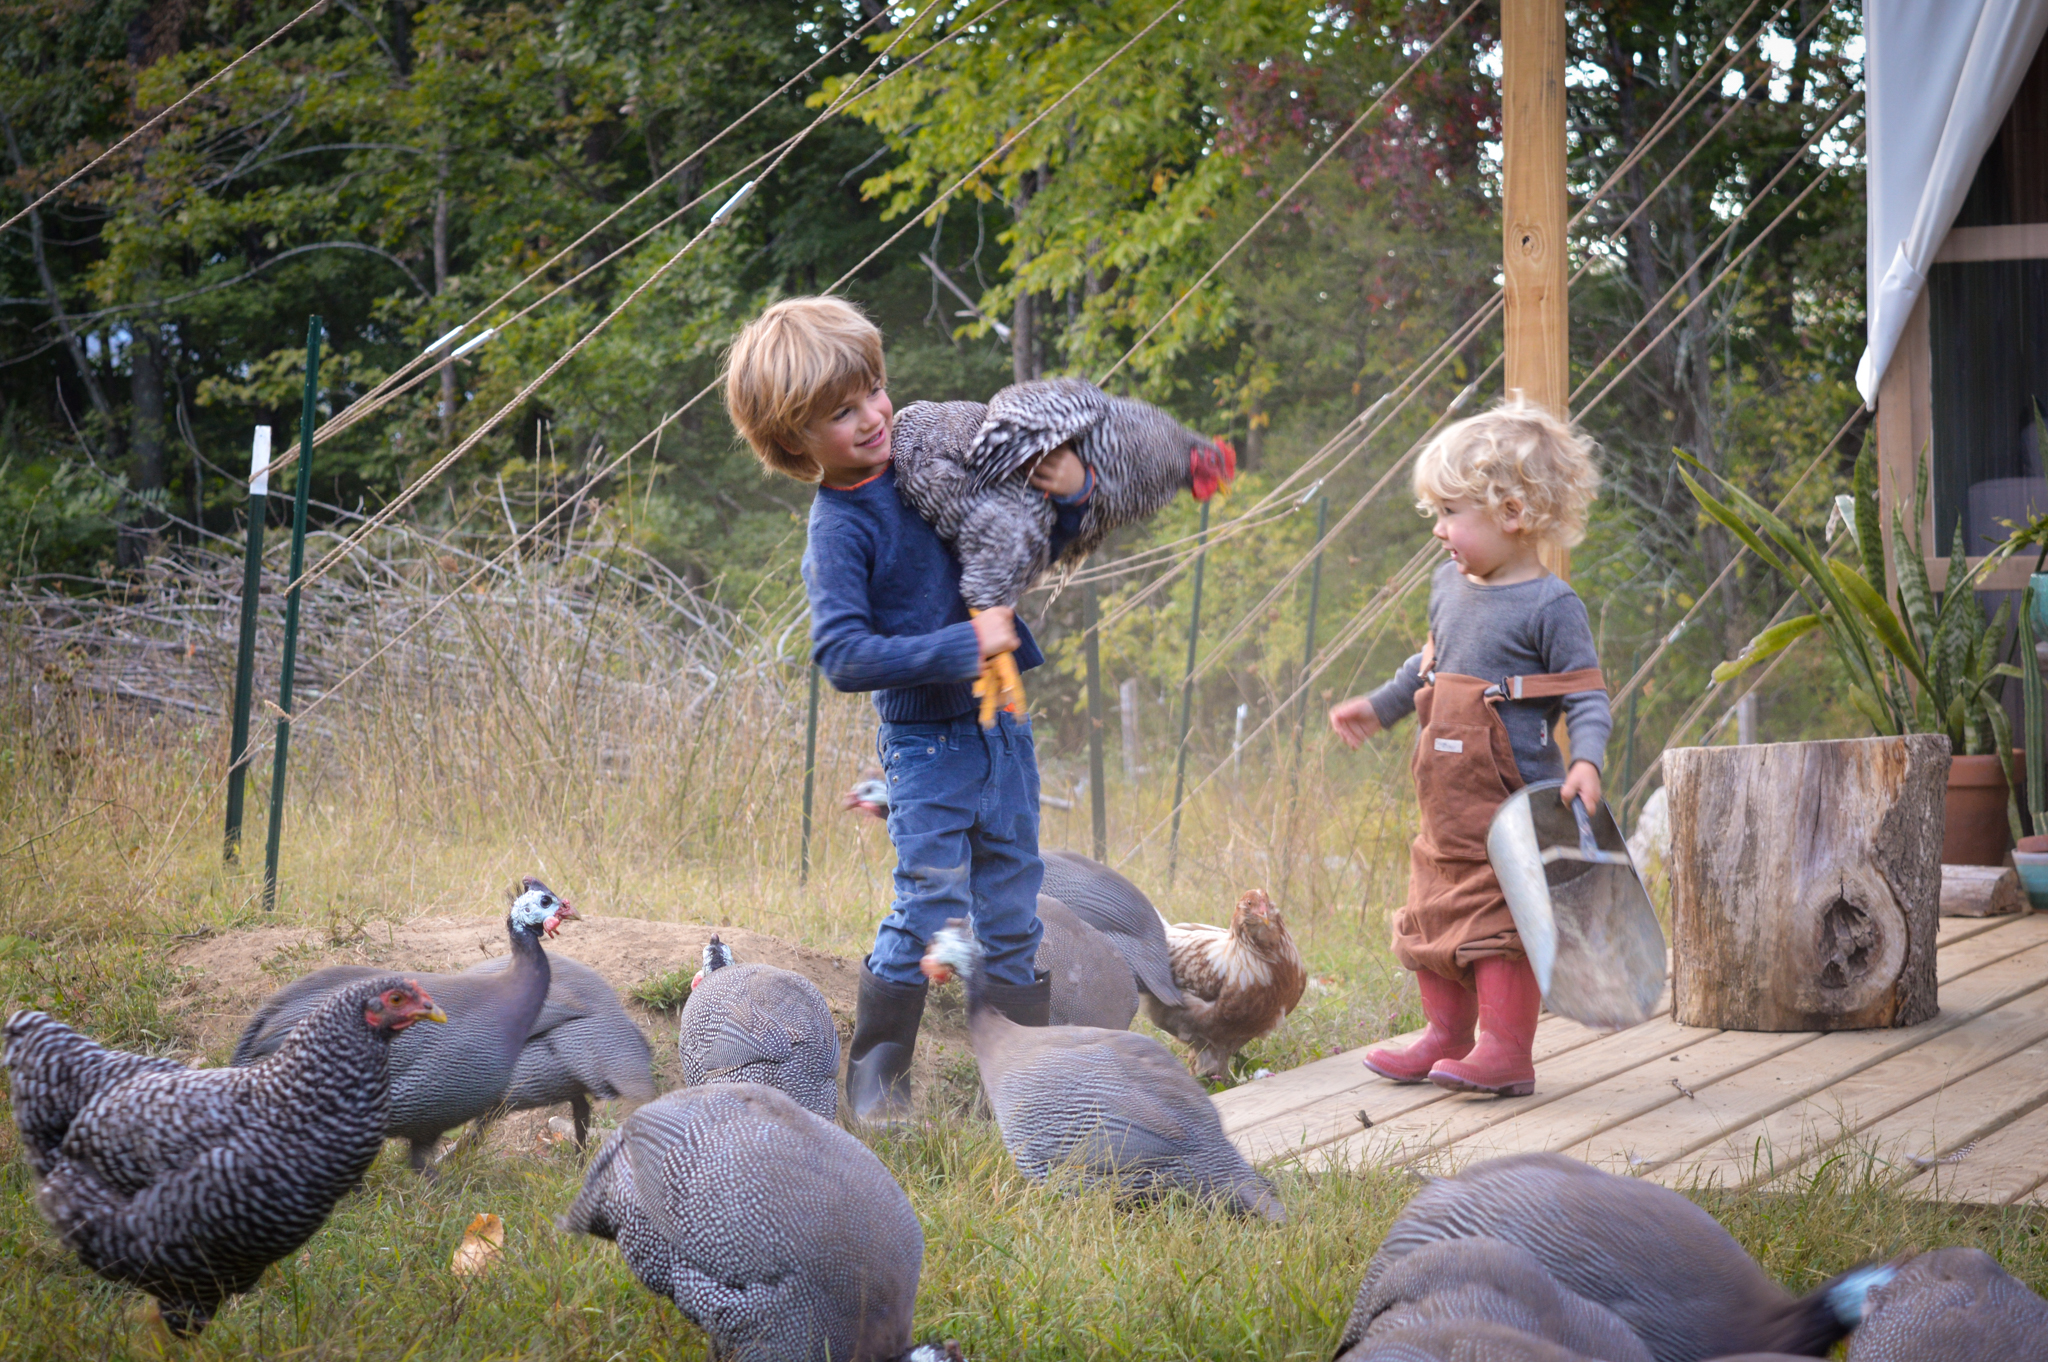 Little one holding a backyard layer chicken in the pasture